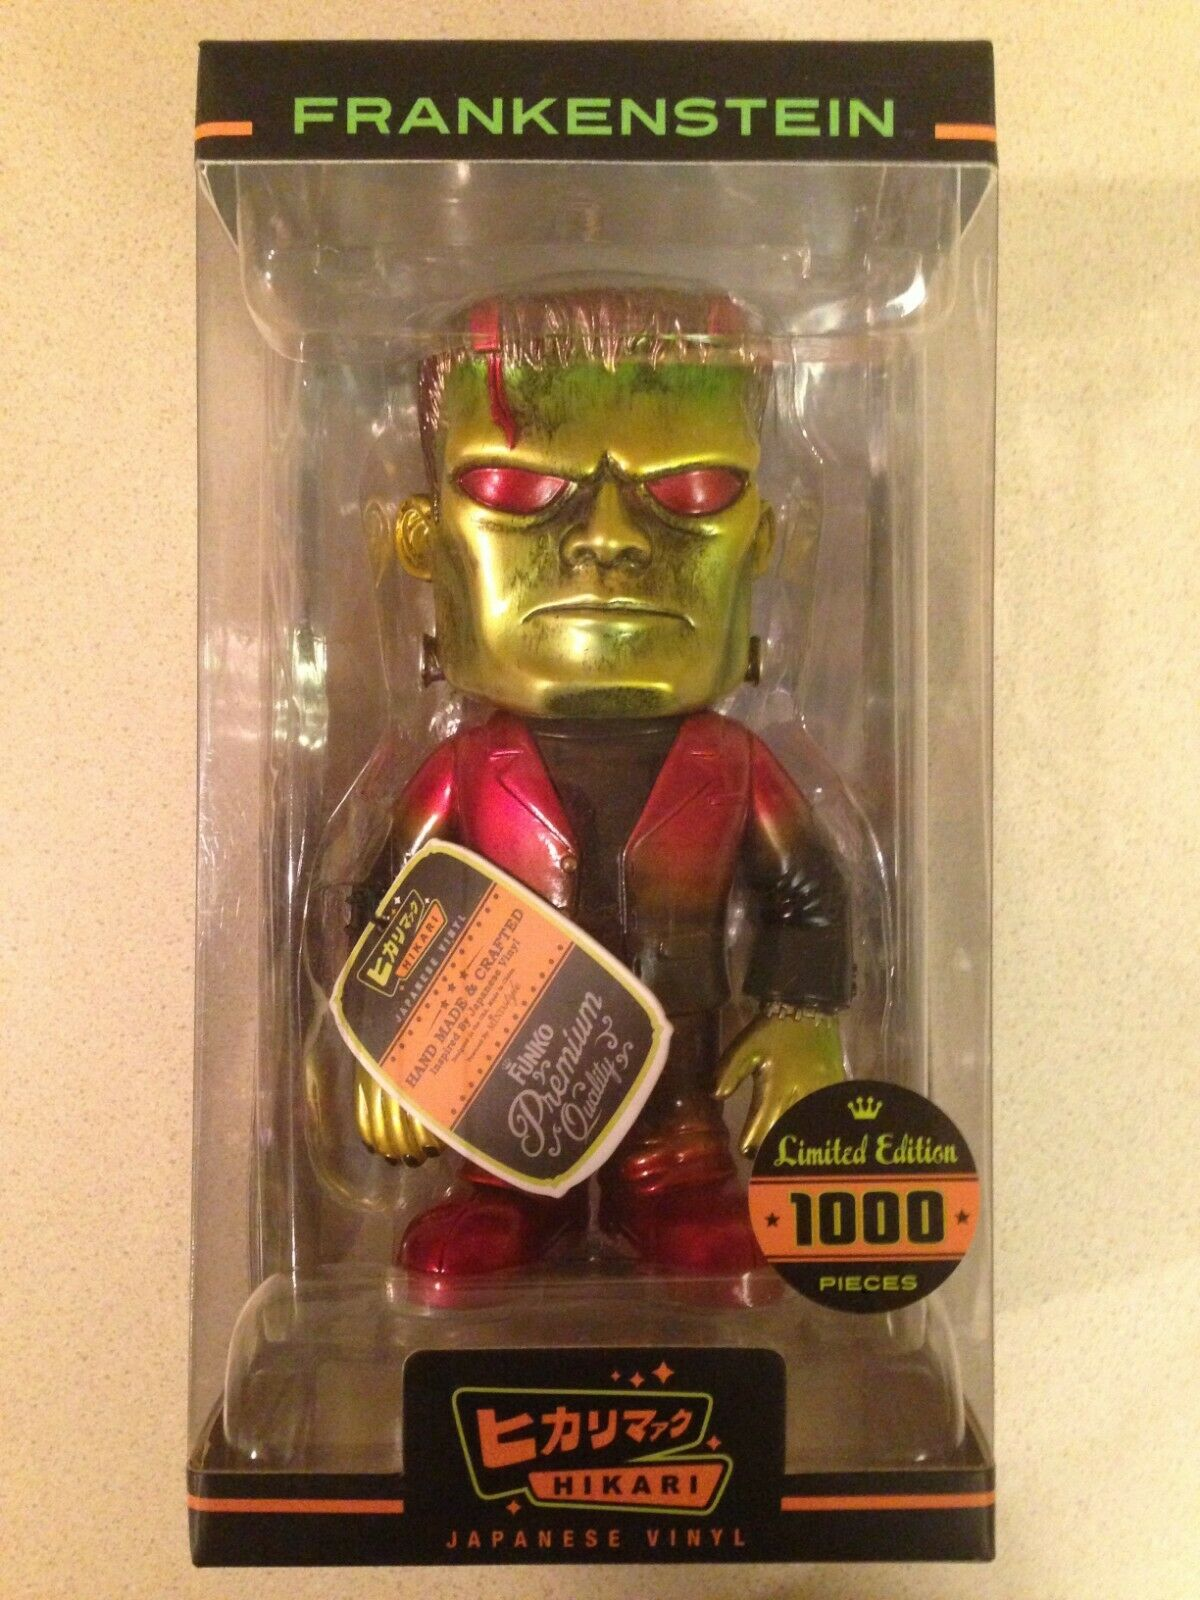 Hikari Japanese Vinyl Frankenstein, New in Box, Limited Edition 1 of 1000 Pieces